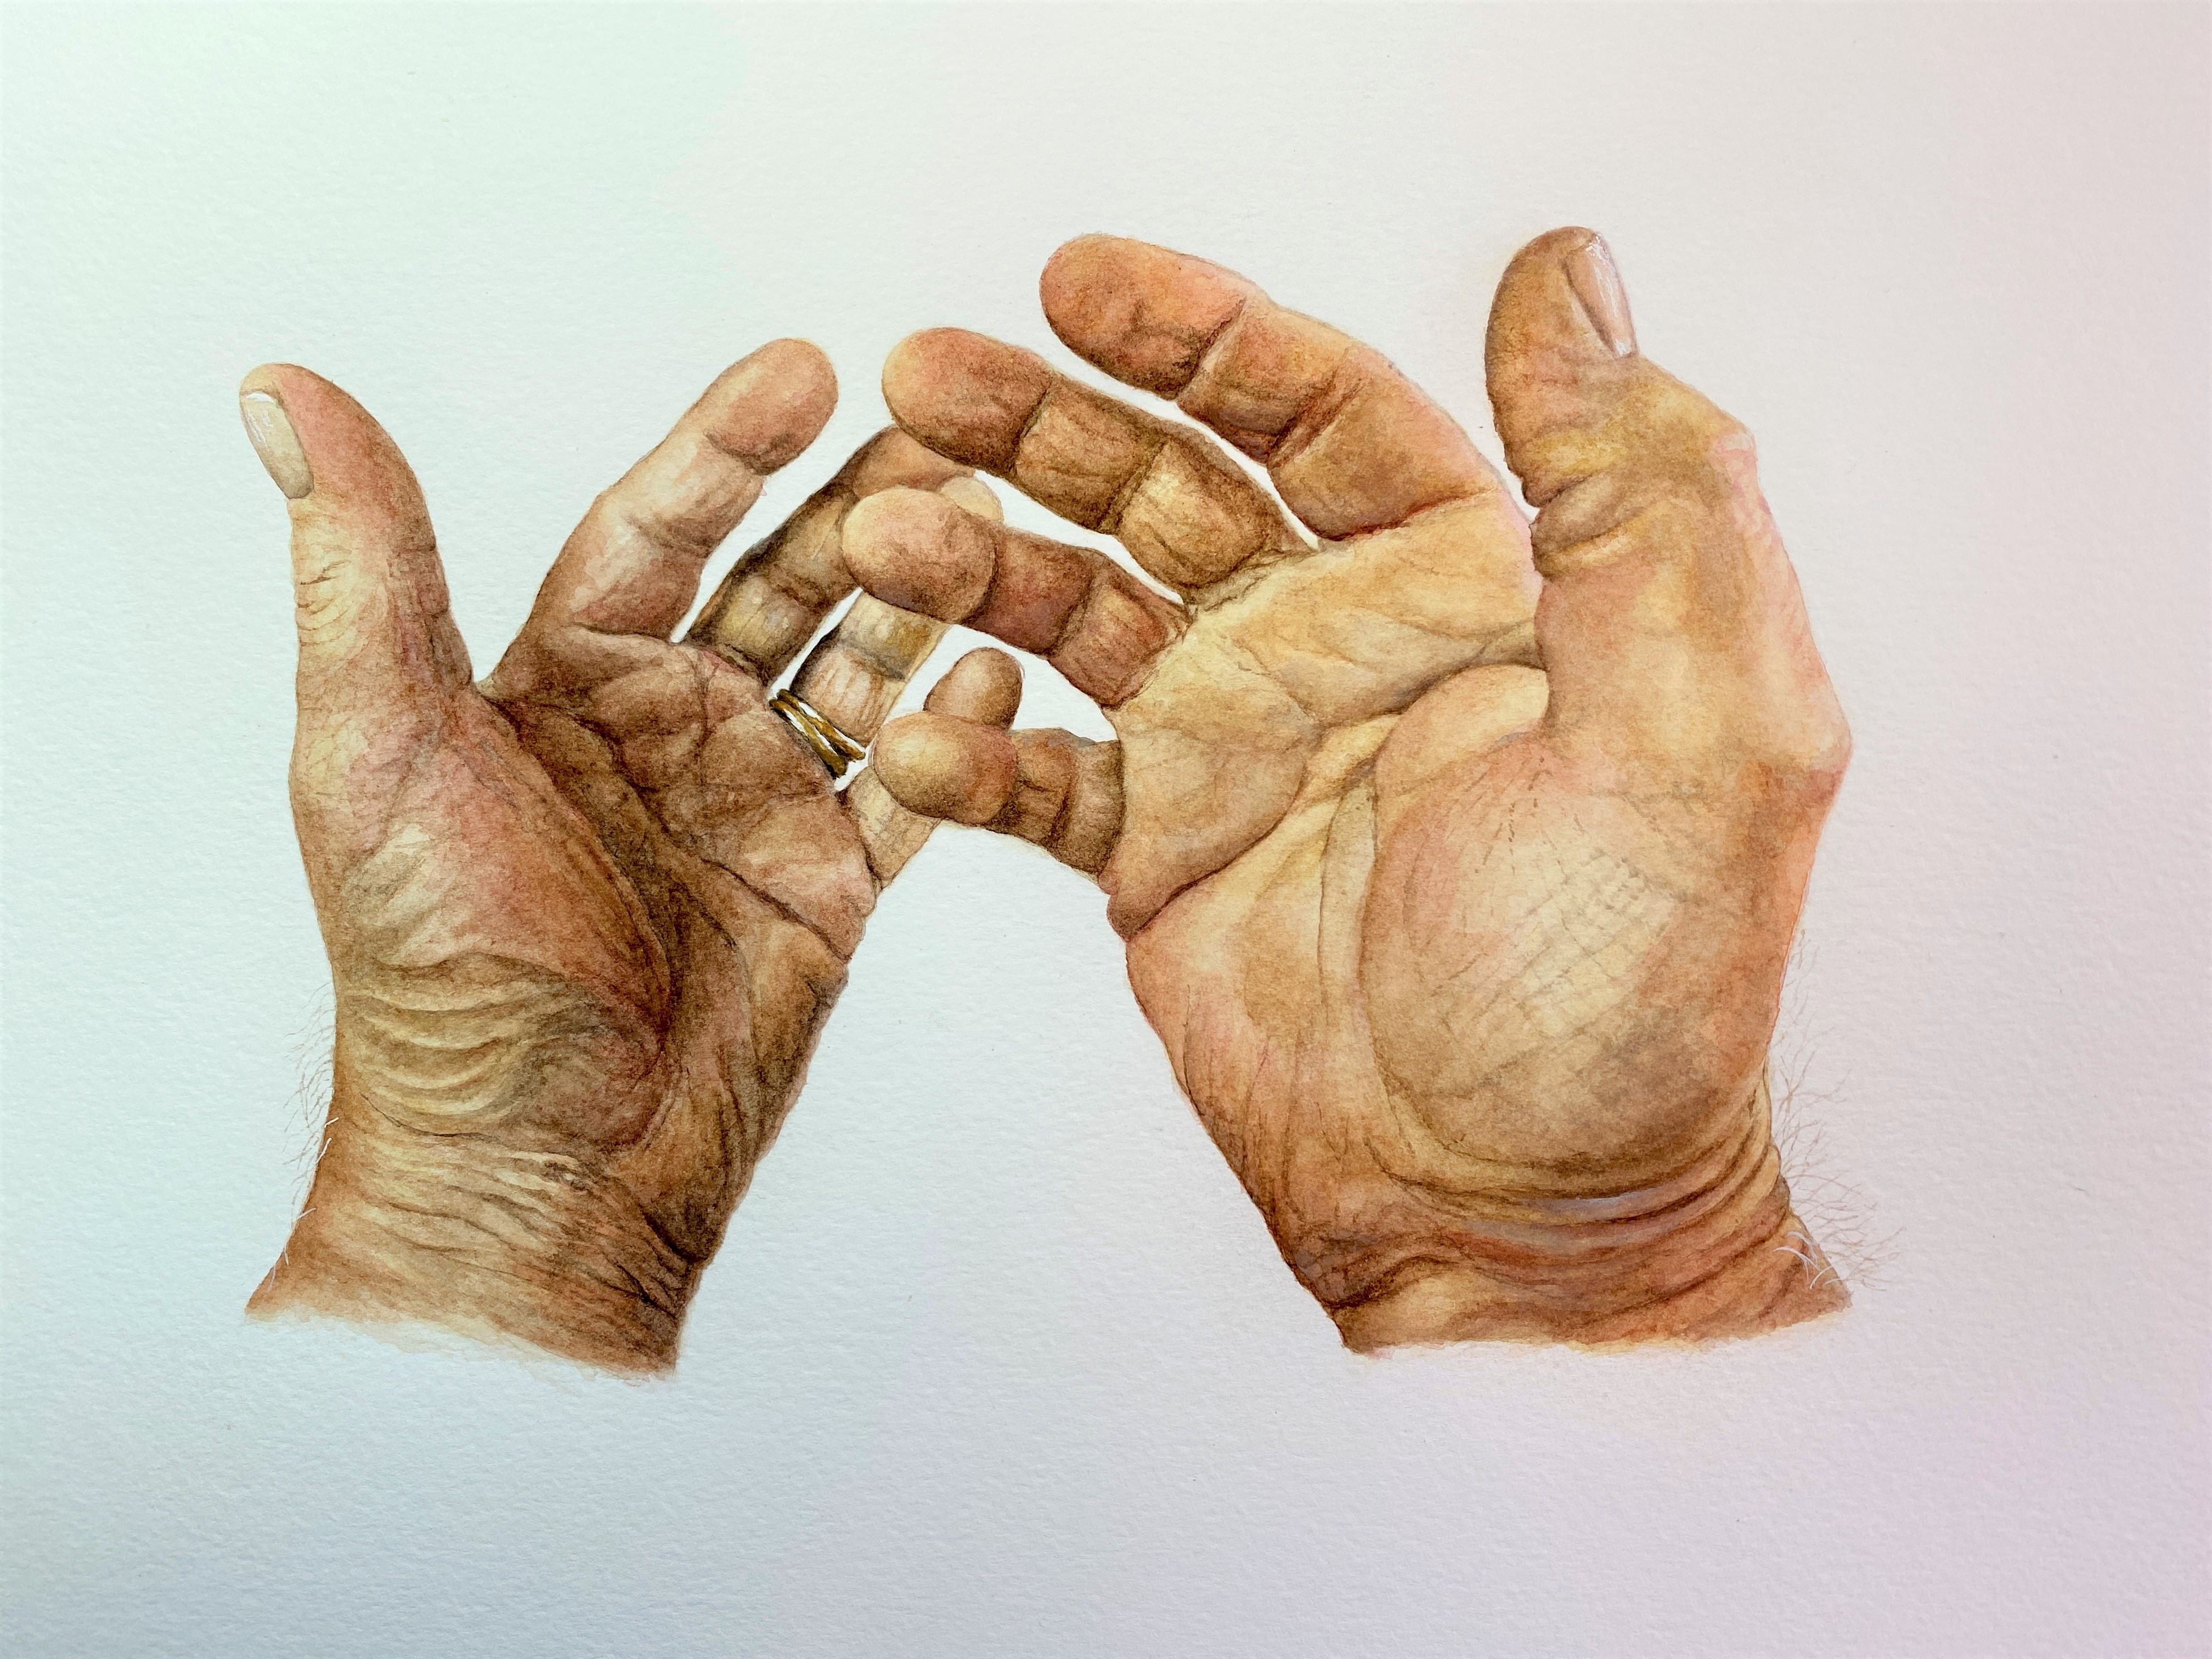 With These Hands.......